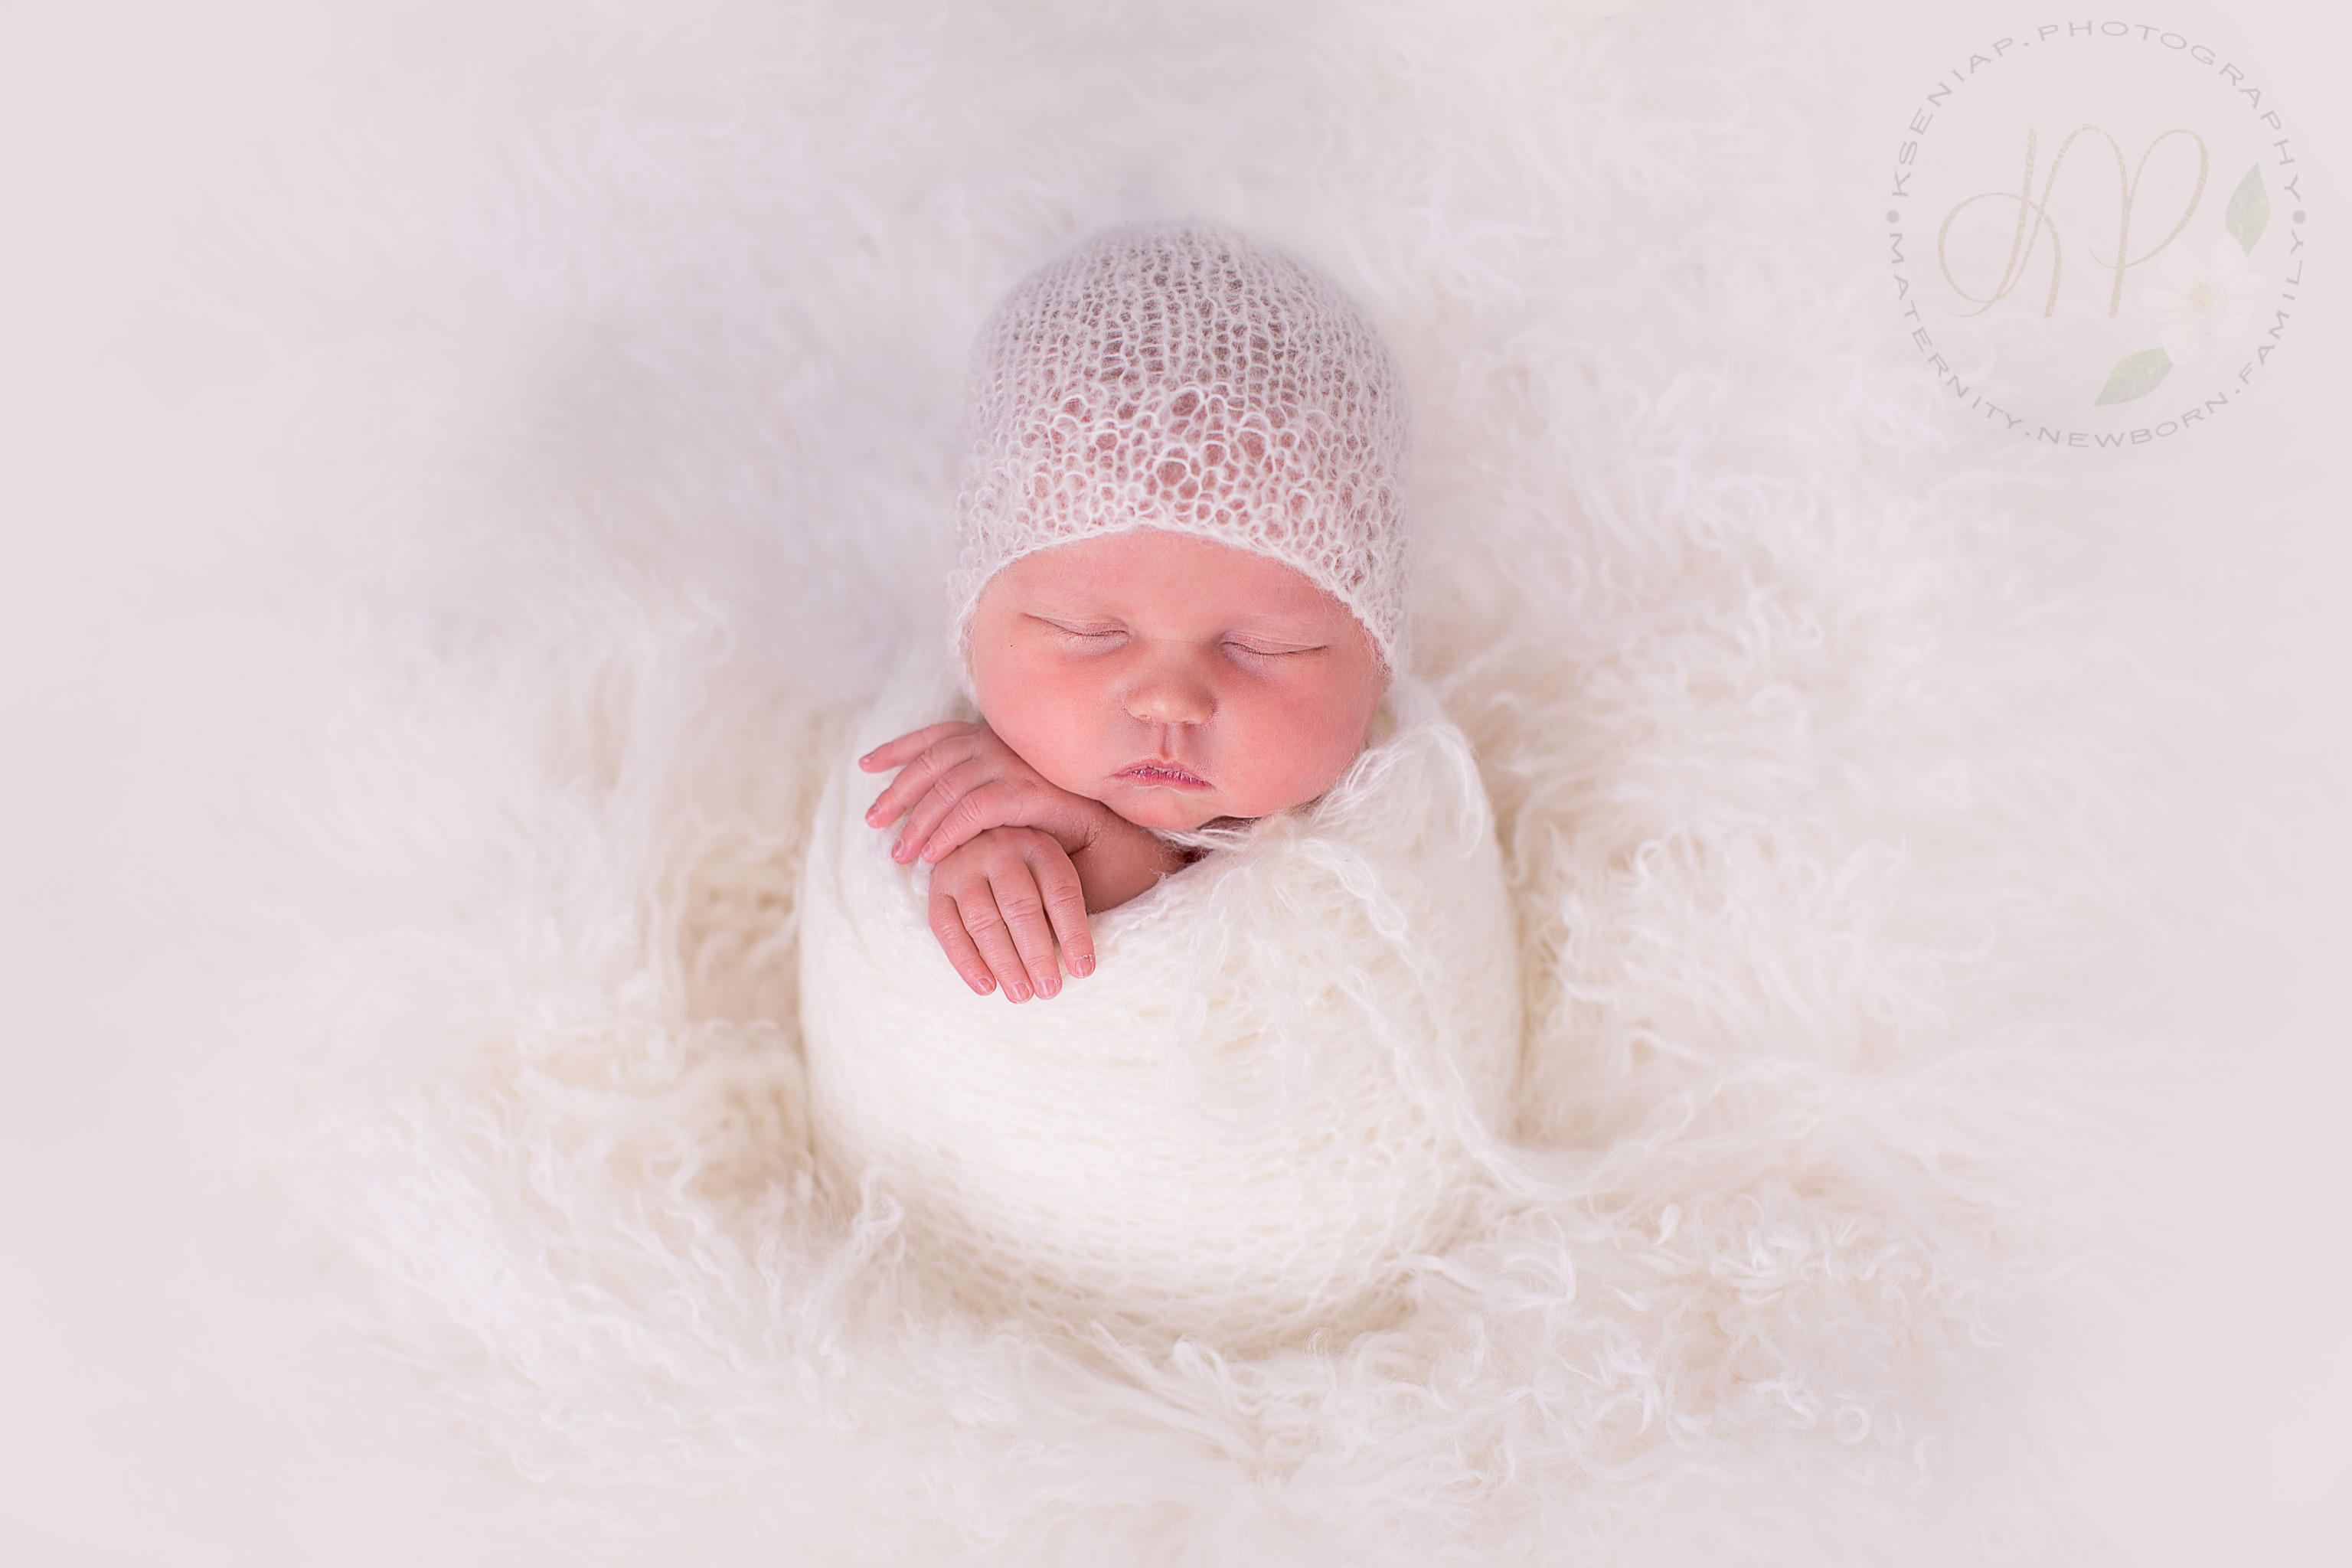 Image of newborn baby wrapped in white fabric